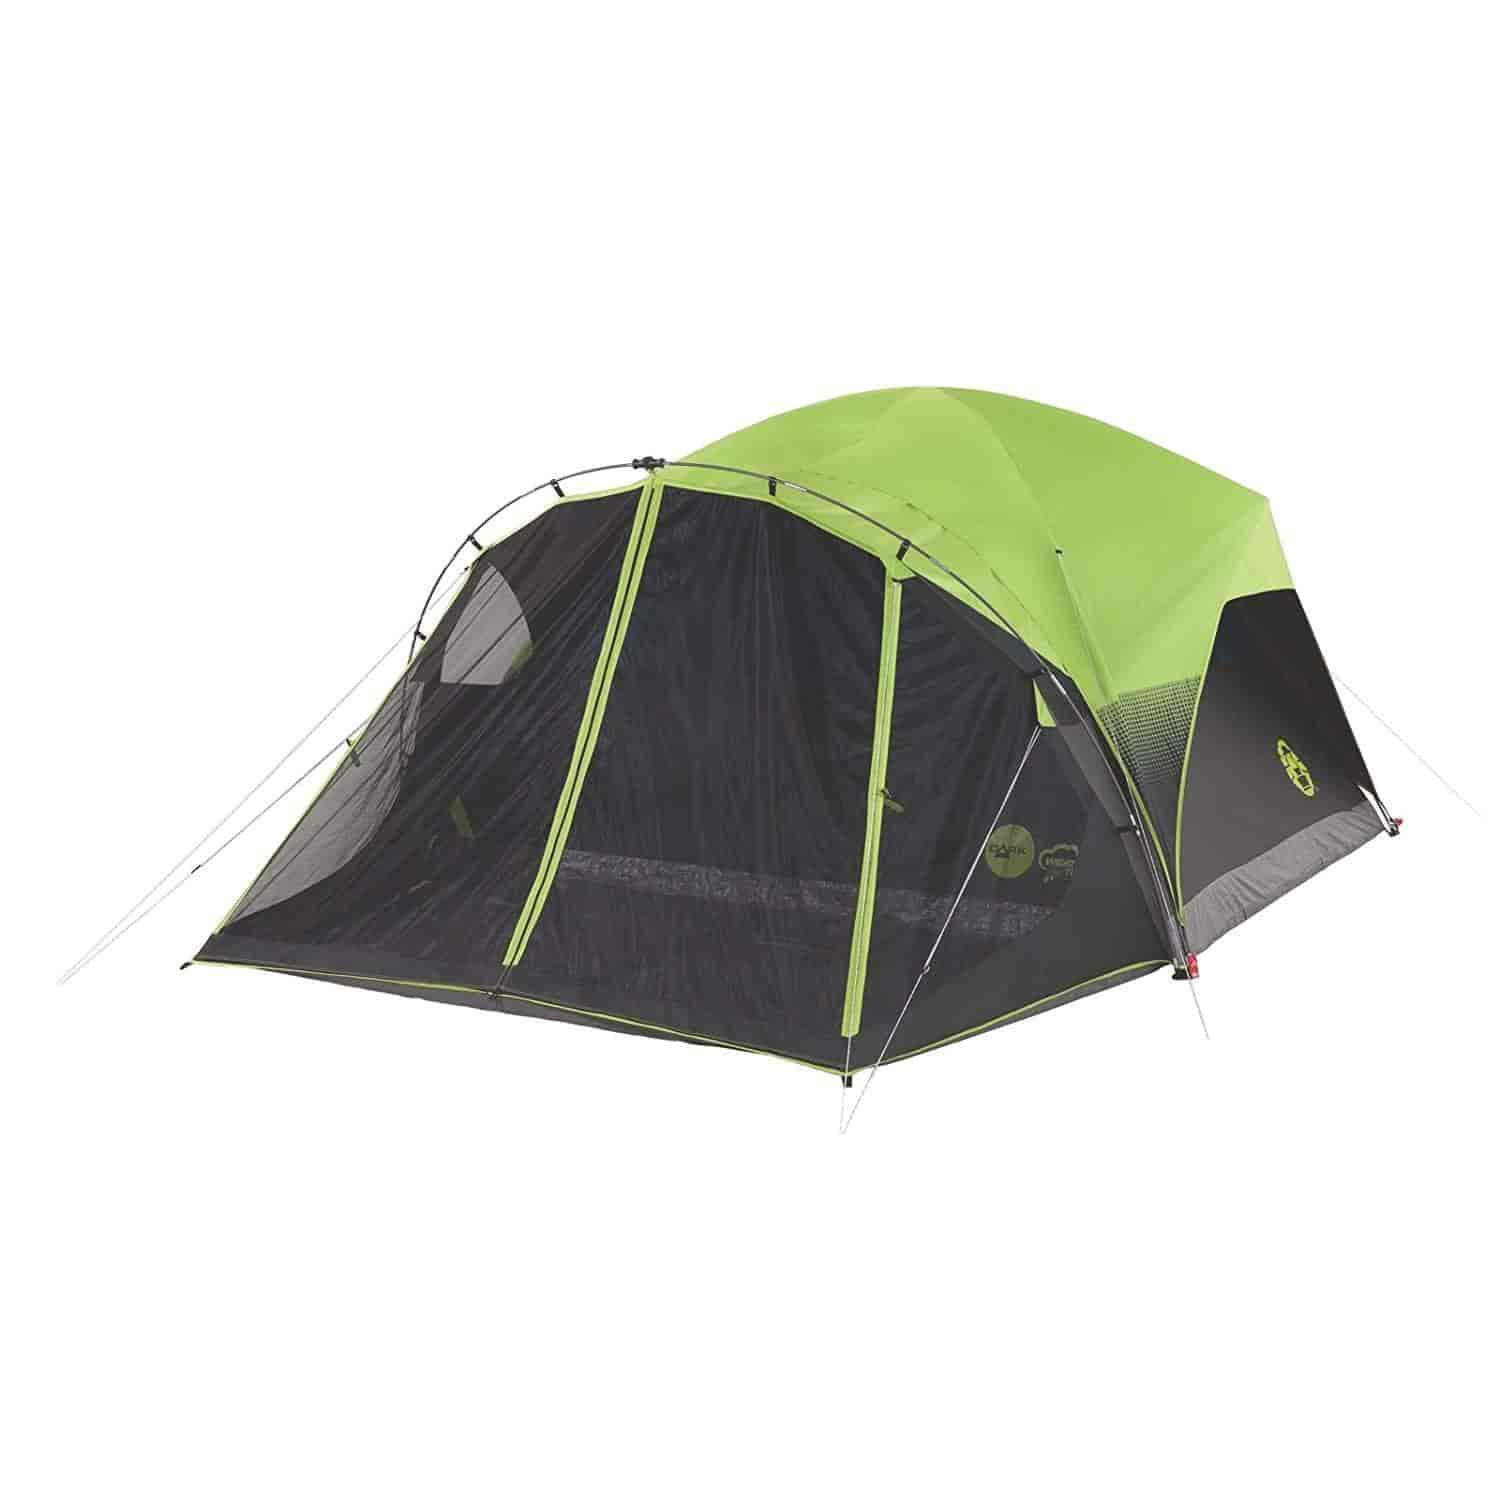 Coleman Carlsbad Fast Pitch 6-Person Dome Tent with Screen Room  sc 1 st  Justdial & Buy Coleman Carlsbad Fast Pitch 6-Person Dome Tent with Screen ...